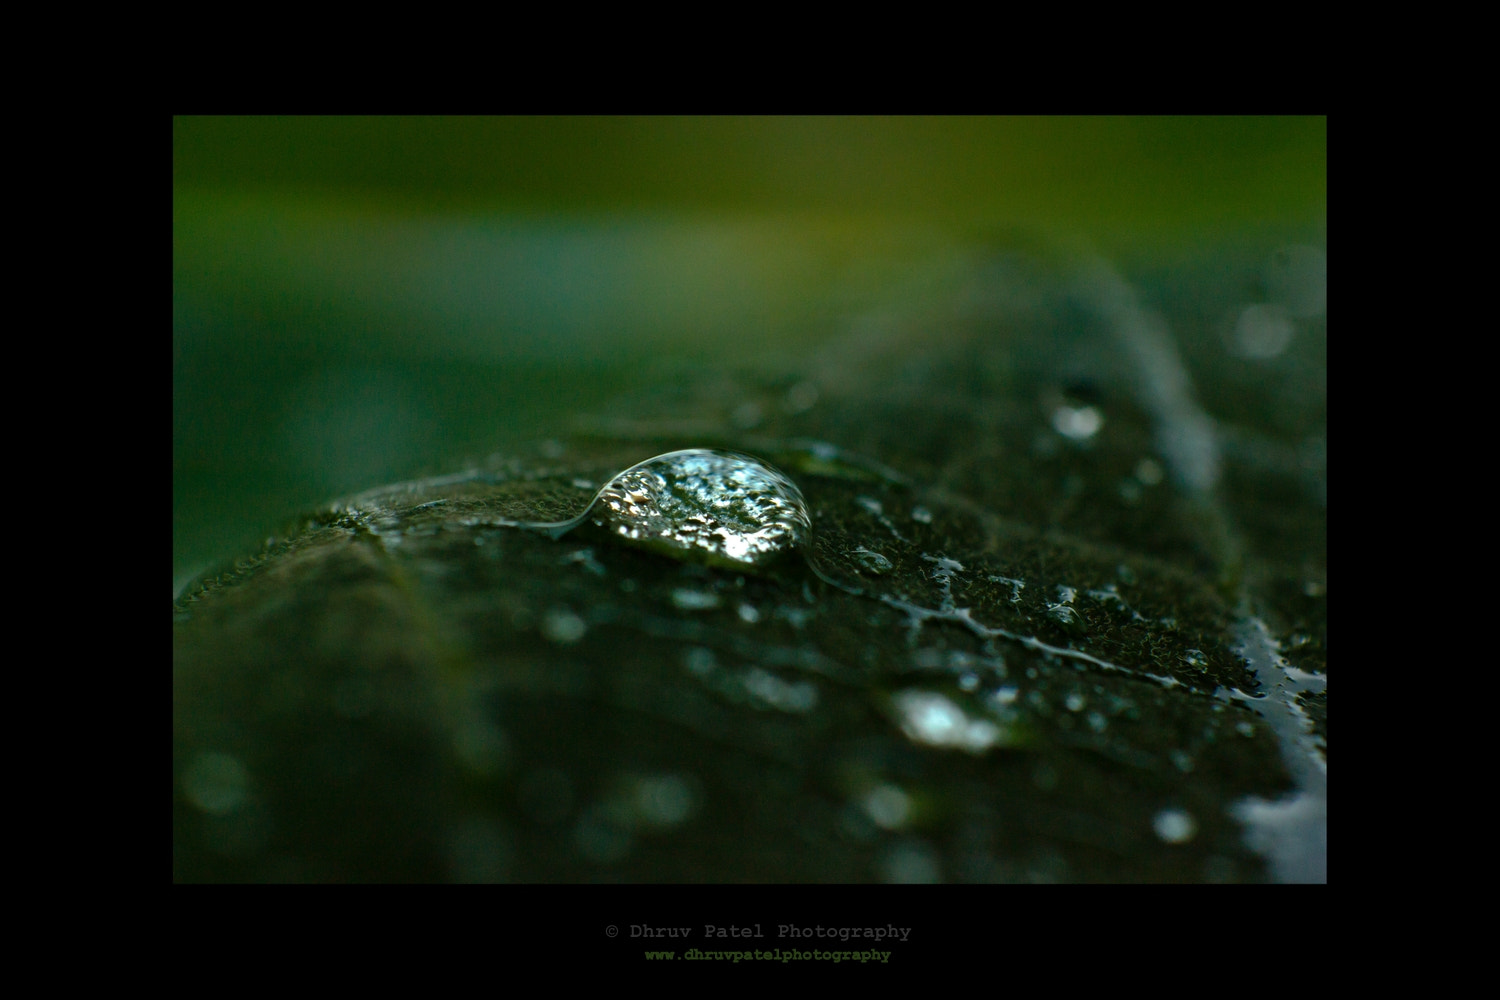 Photograph Crystal Drop on Leaf by Dhruv Patel on 500px